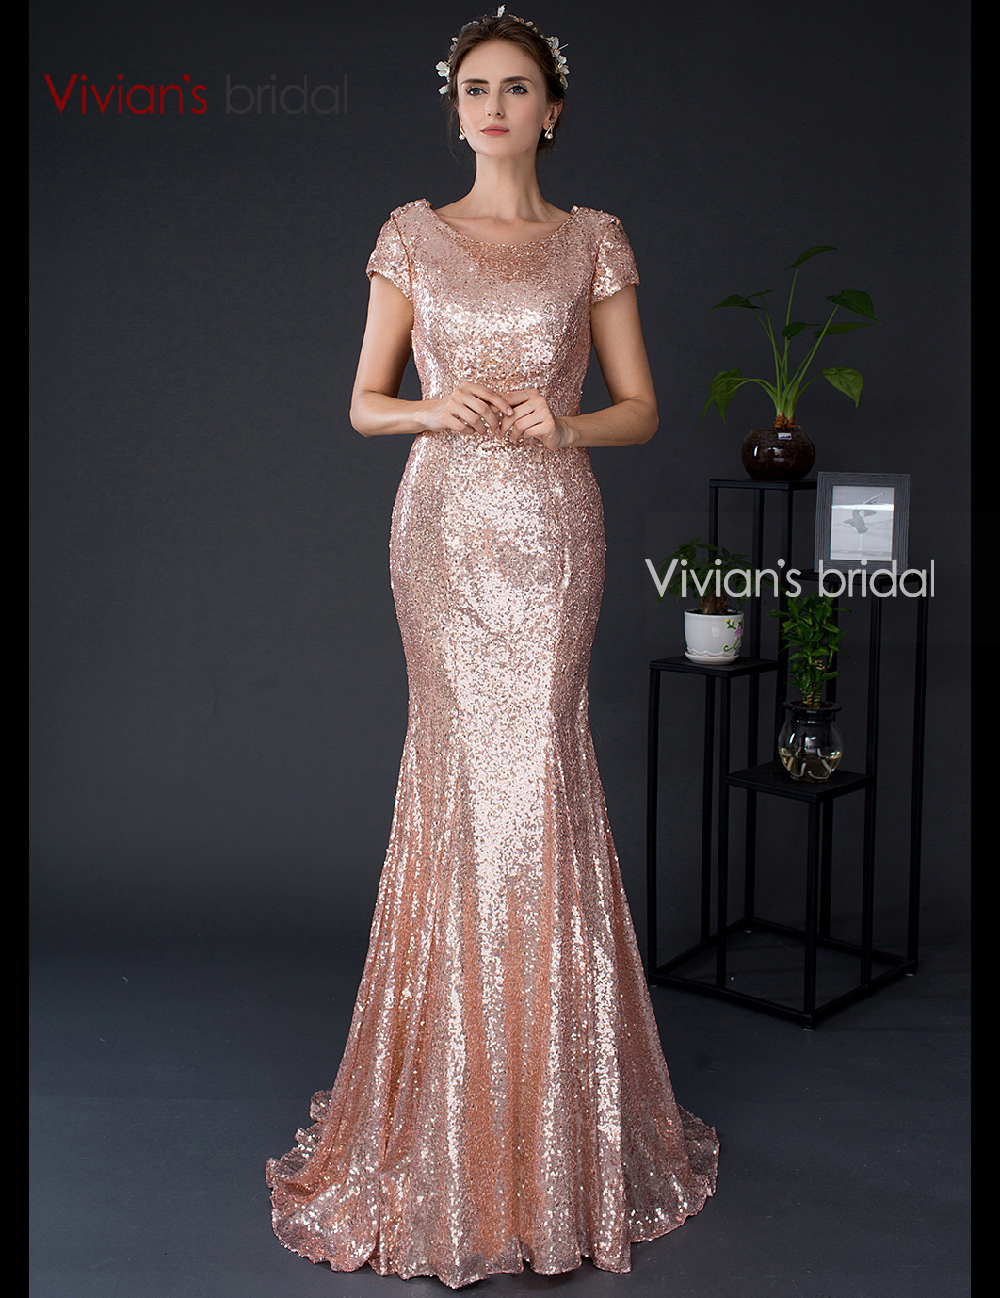 Vivian 39 S Bridal Bridesmaid Dresses Long Short Sleeve Gold